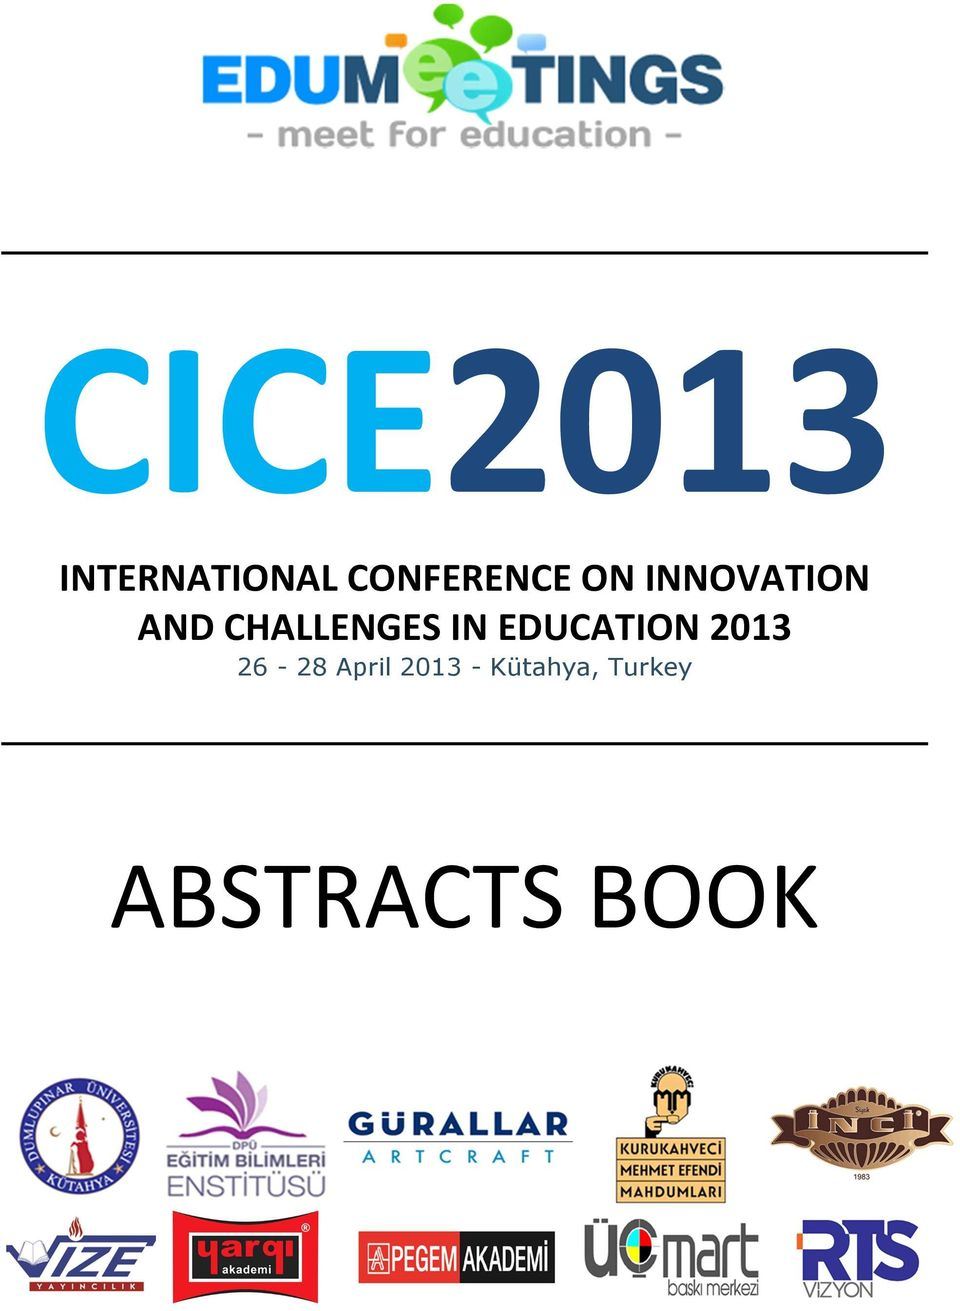 CHALLENGES IN EDUCATION 2013